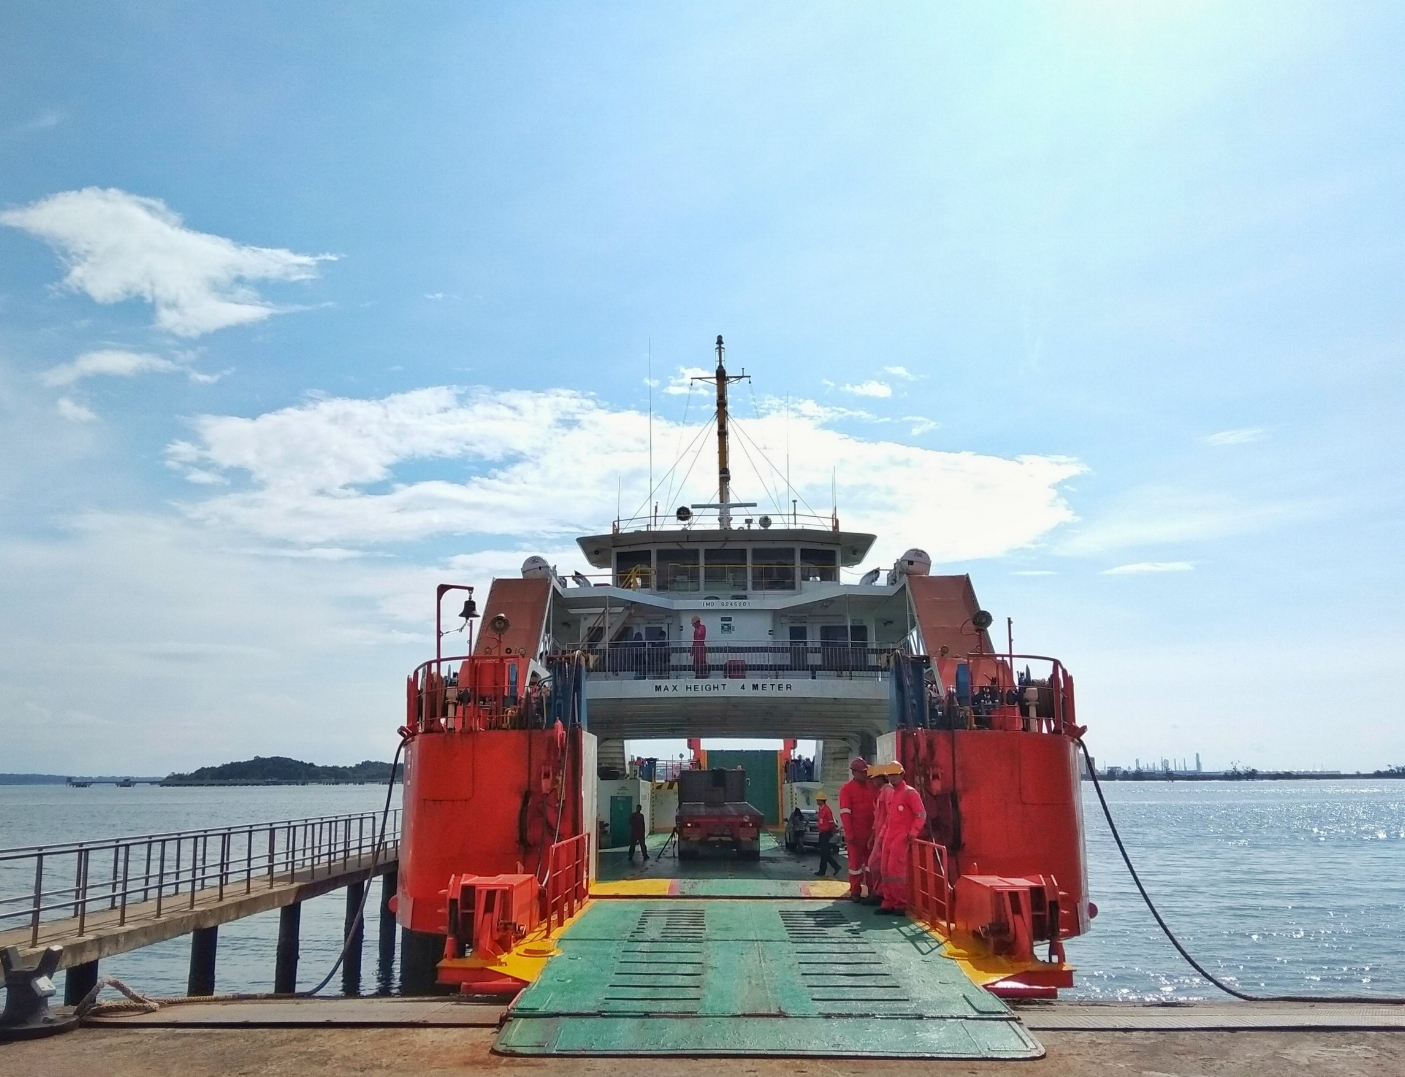 The ferry is the first step on your way from Brunei to Kota Kinabalu.